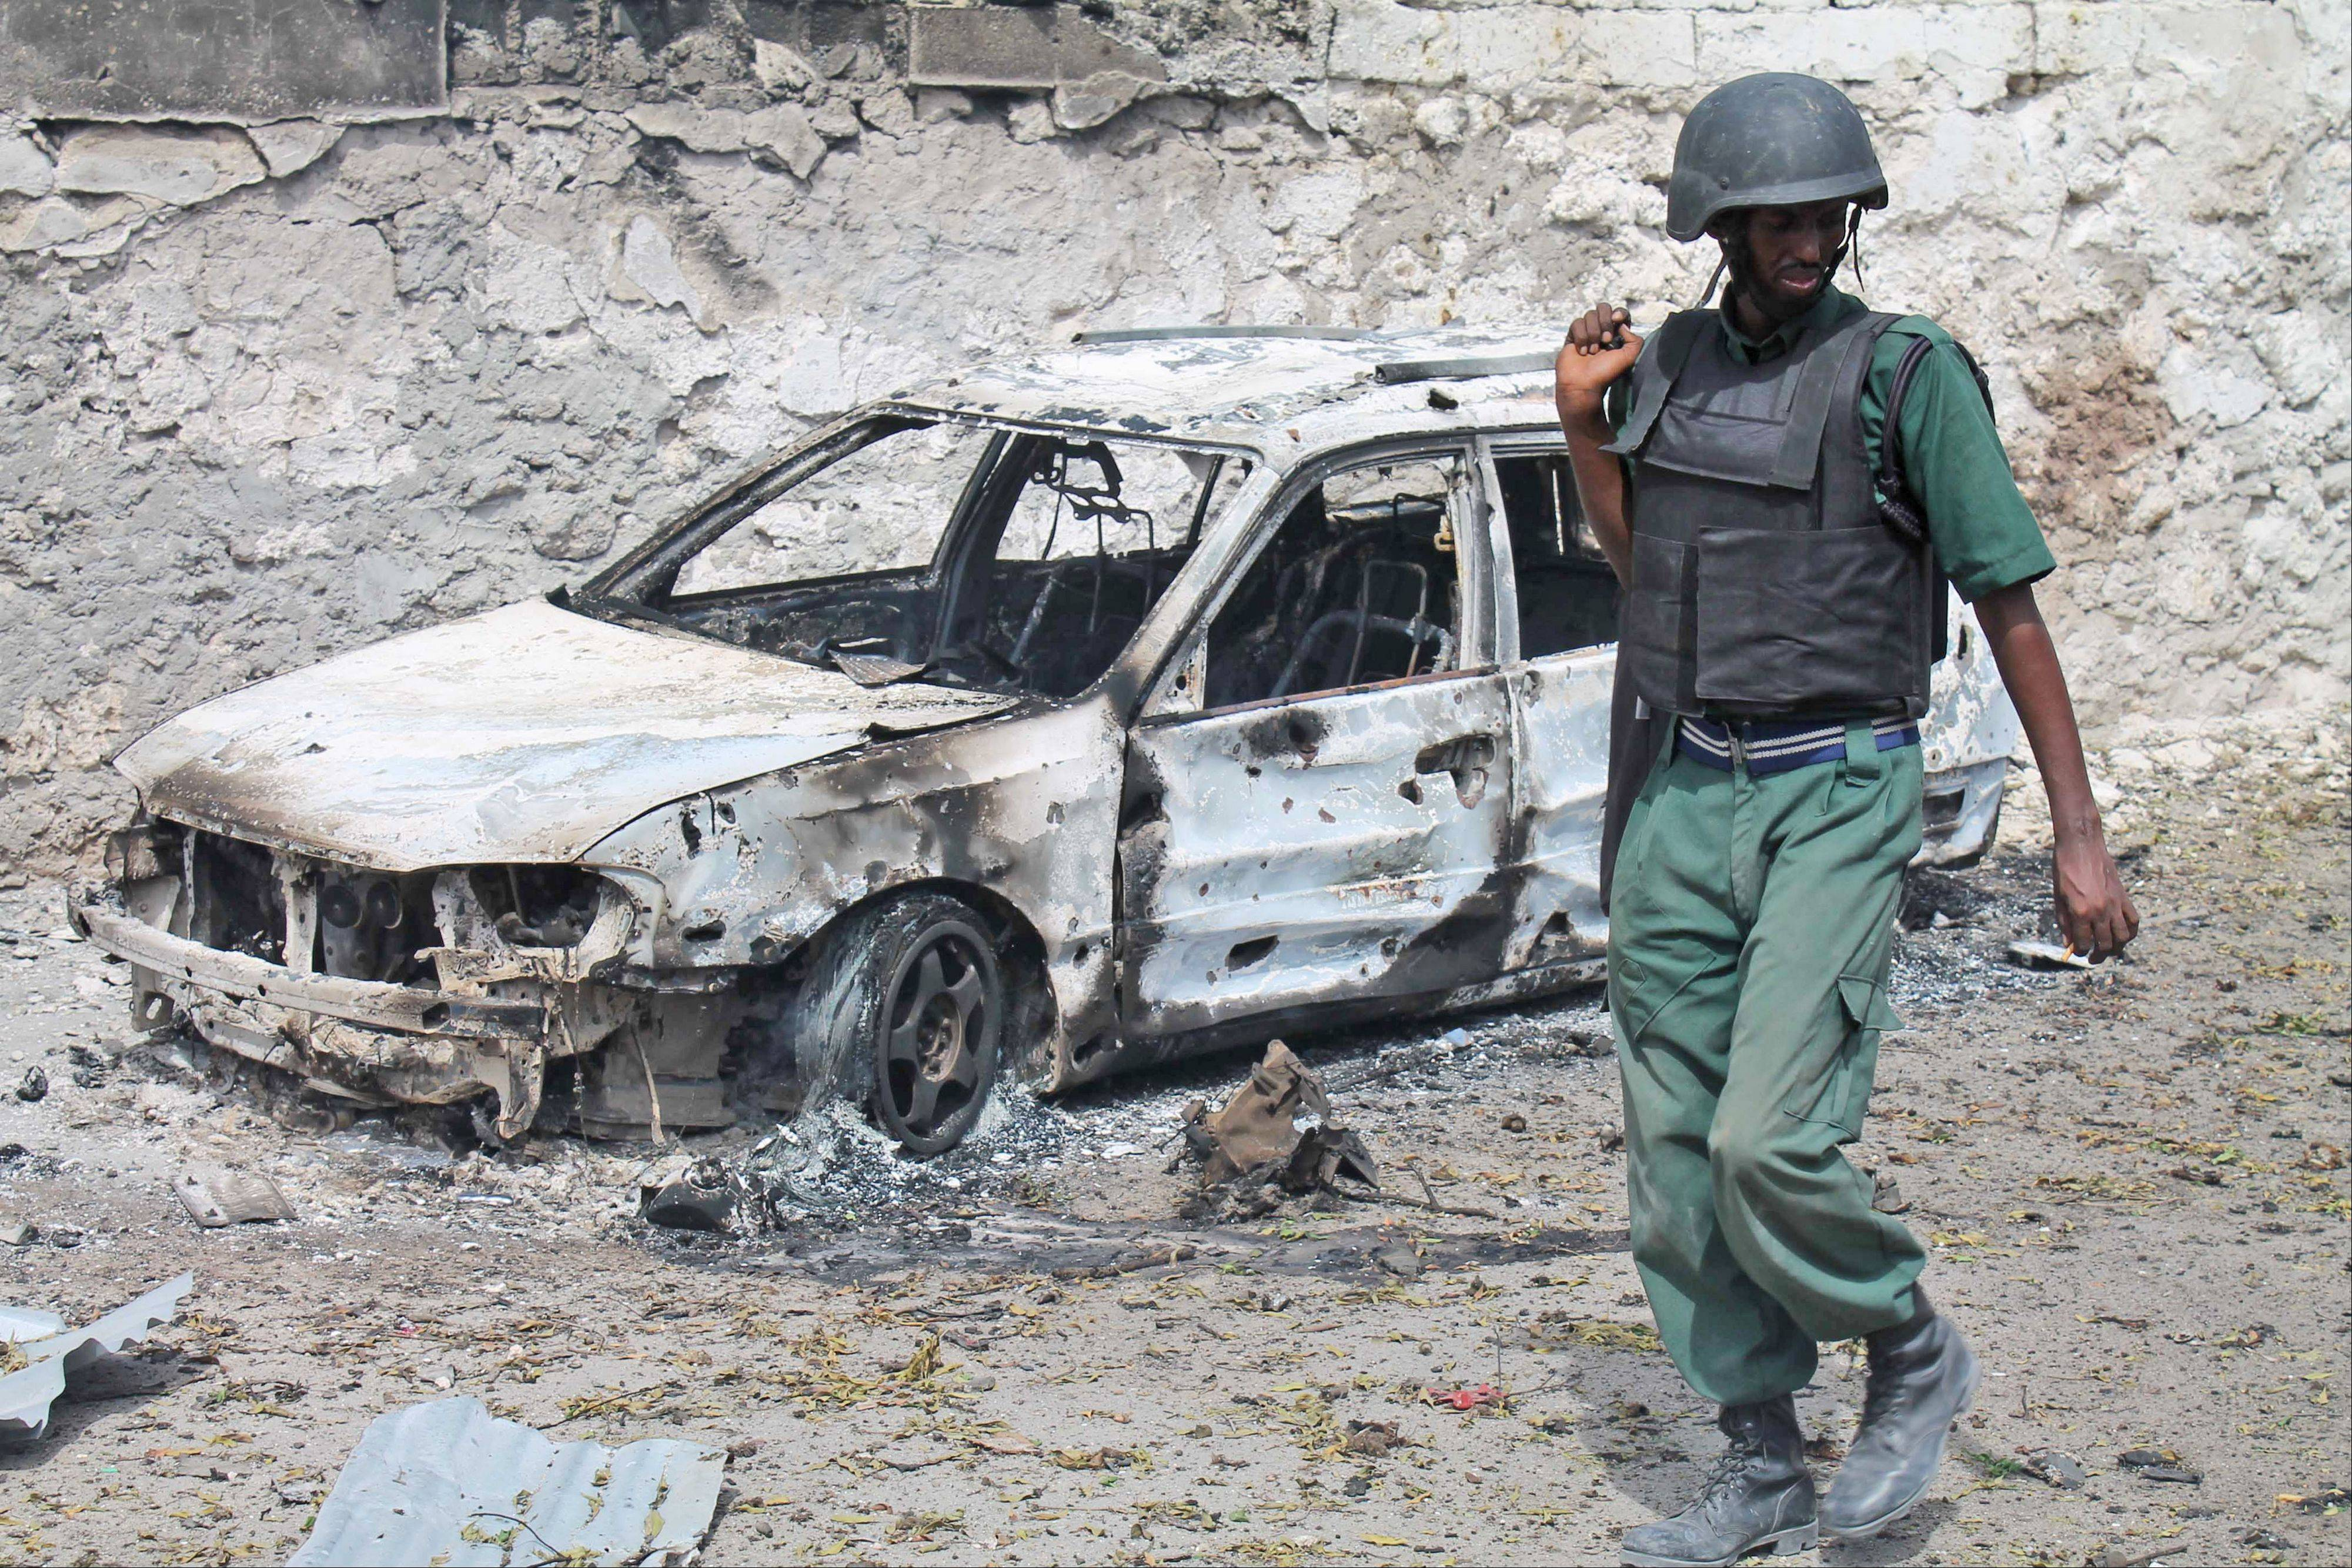 A Somali soldier walks near a destroyed car near the entrance of Mogadishu's court complex in Somalia, Sunday. Militants launched a serious and sustained assault on Mogadishu's main court complex Sunday, detonating at least two blasts, taking an unknown number of hostages and exchanging extended volleys of gunfire with government security forces, witnesses said.